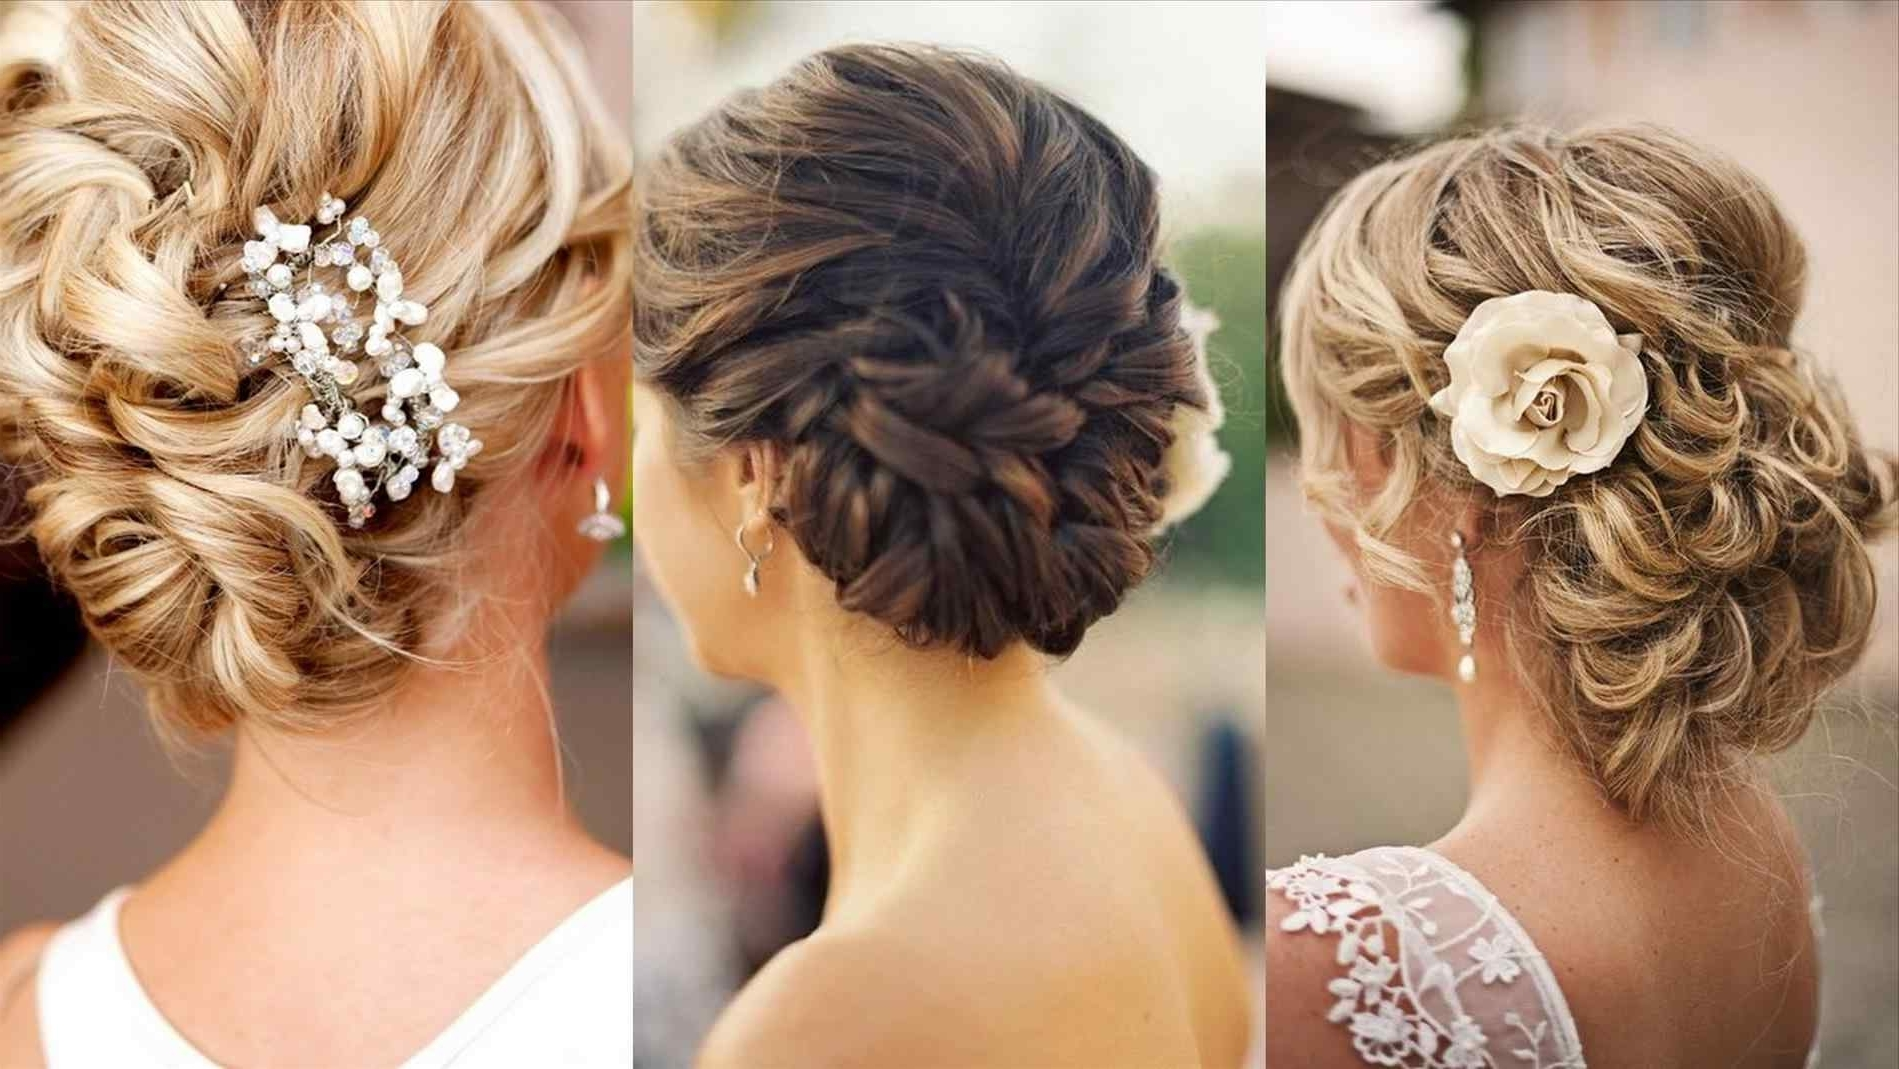 Wedding Updo Hairstyles For Medium Length Hair (View 15 of 15)